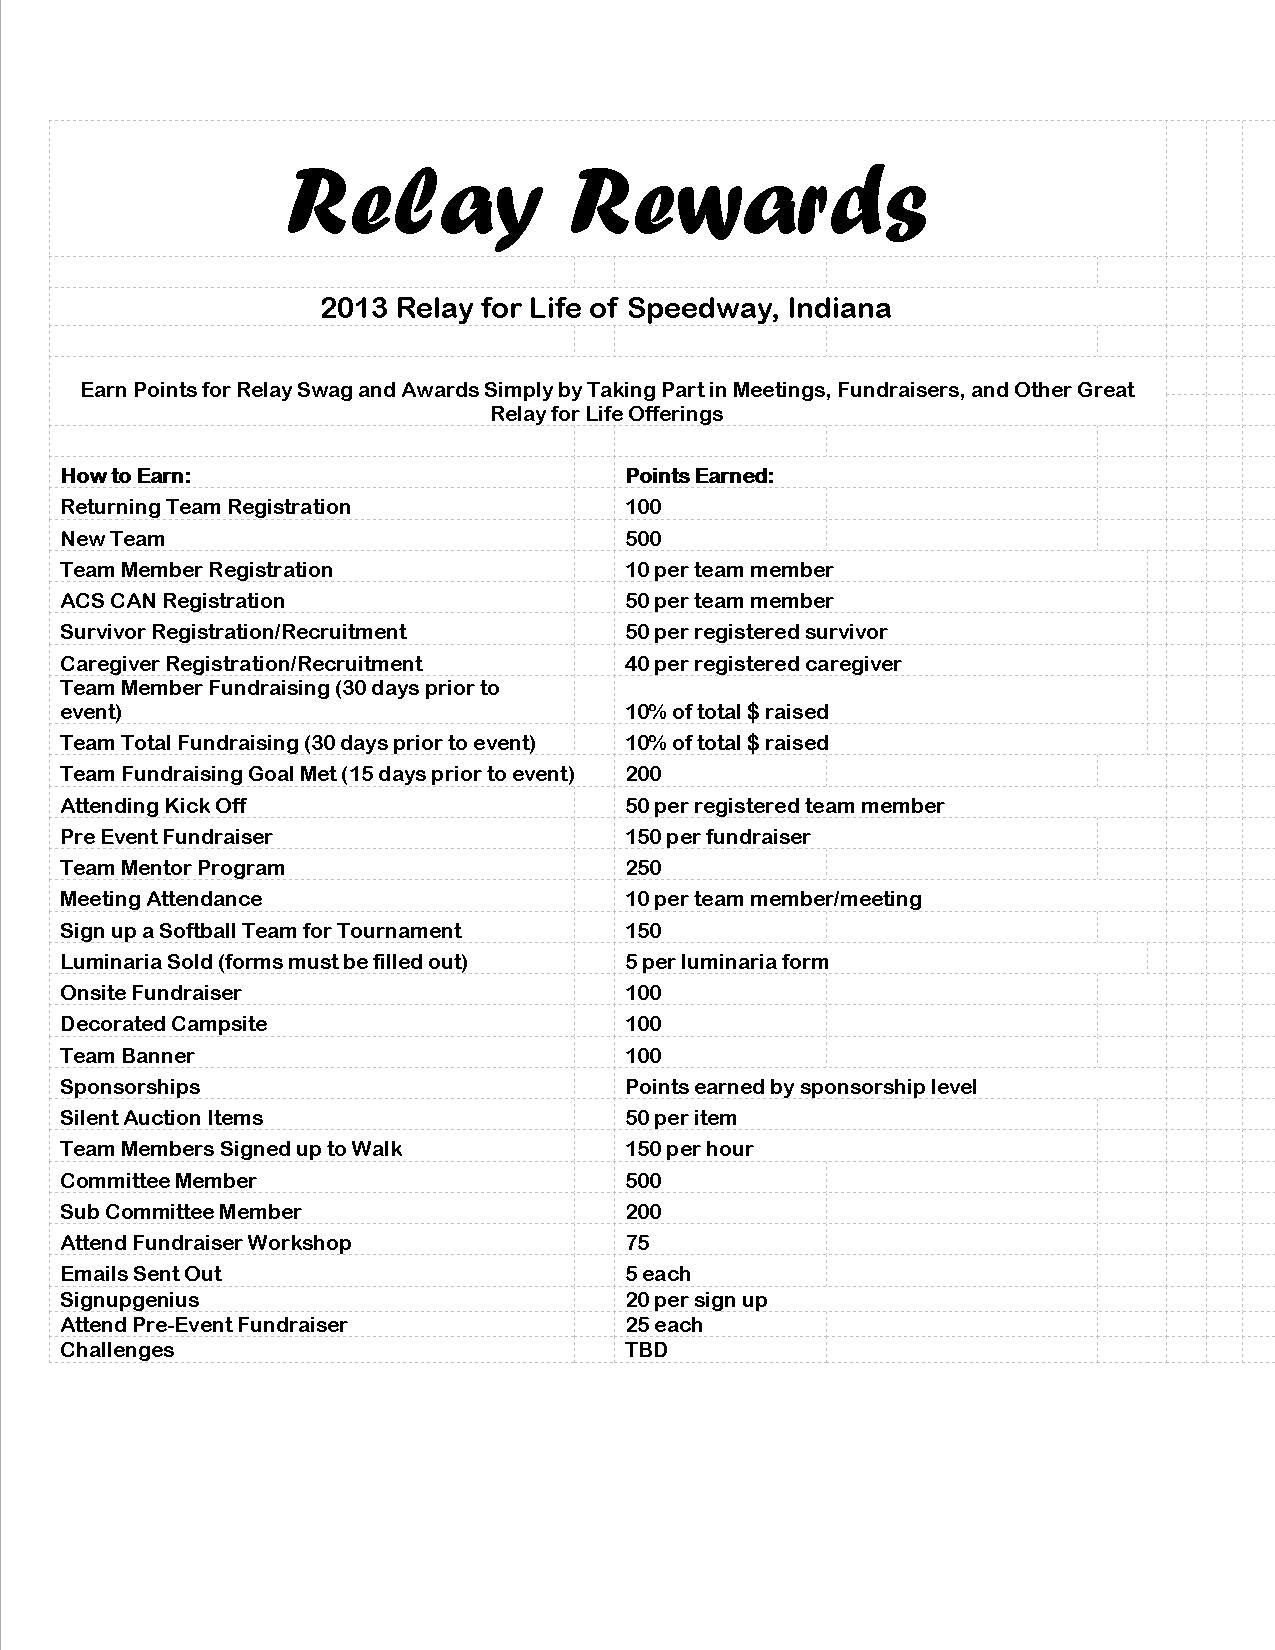 10 Pretty Relay For Life Entertainment Ideas relay for life of speedway has rolled this out at our team